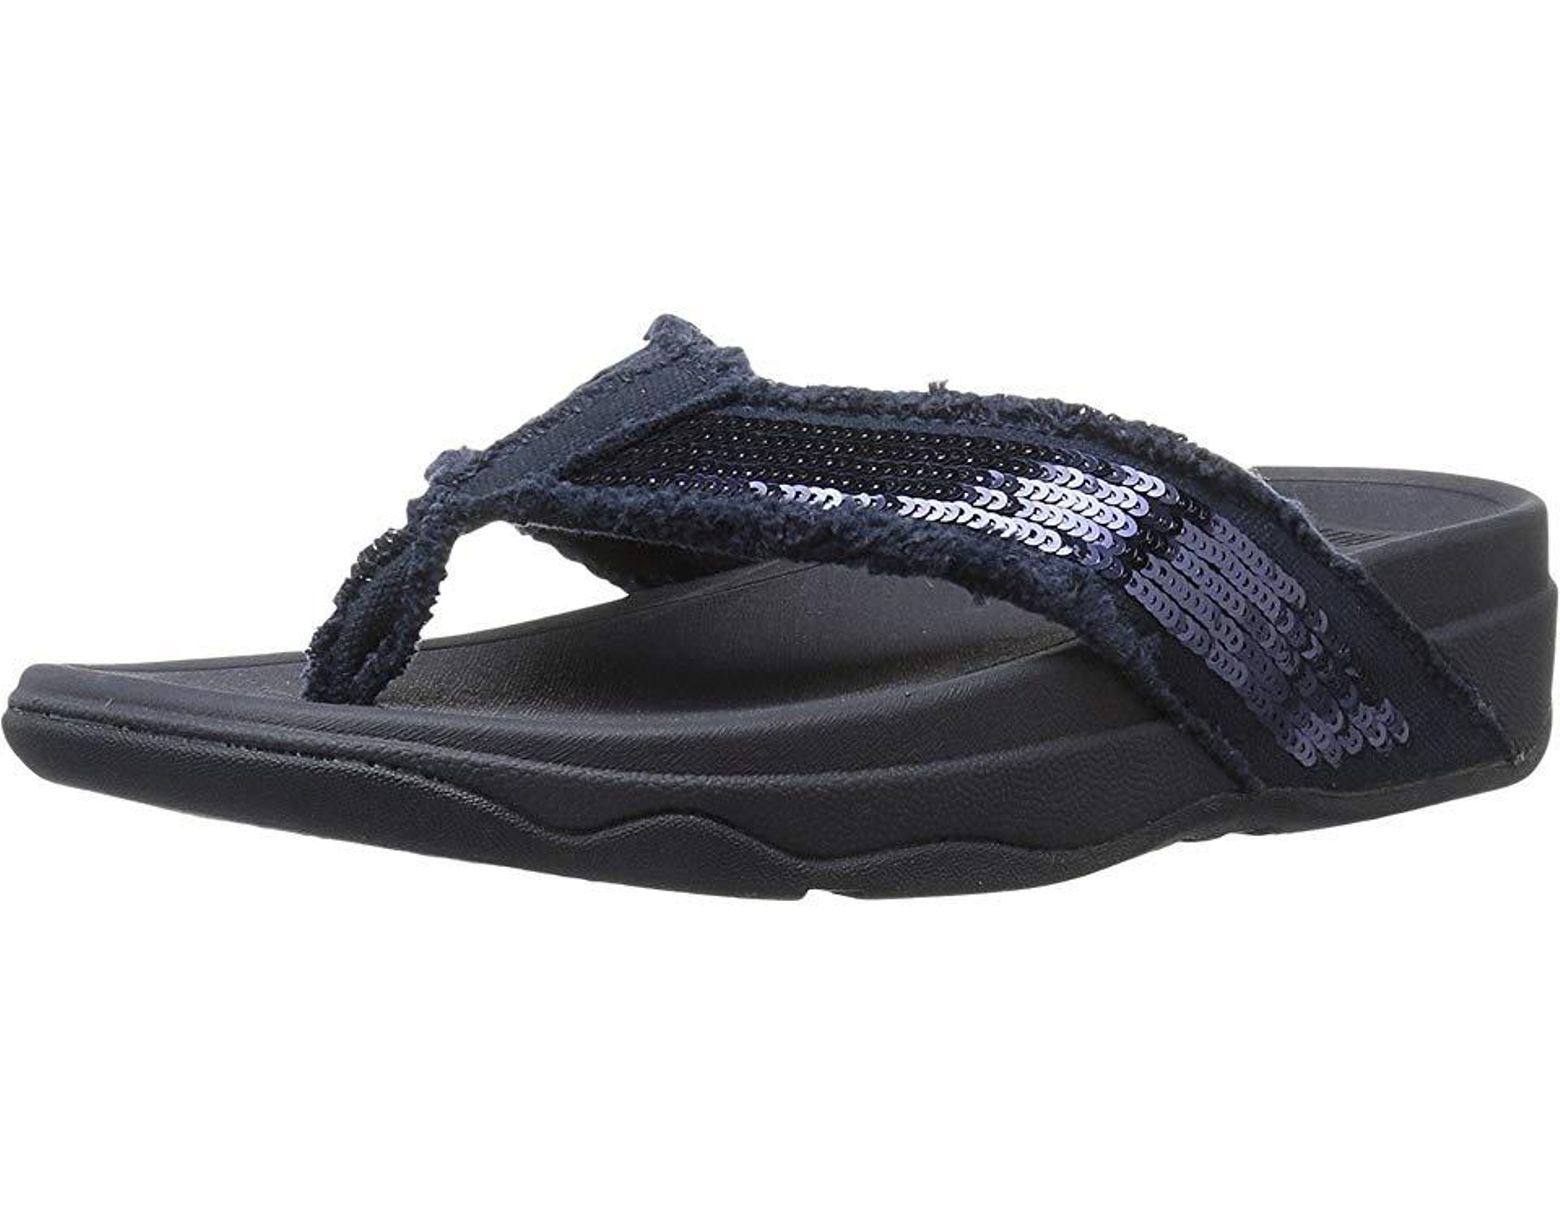 Fitflop Women's B Flip flopRoyal Surfa v0mN8nw